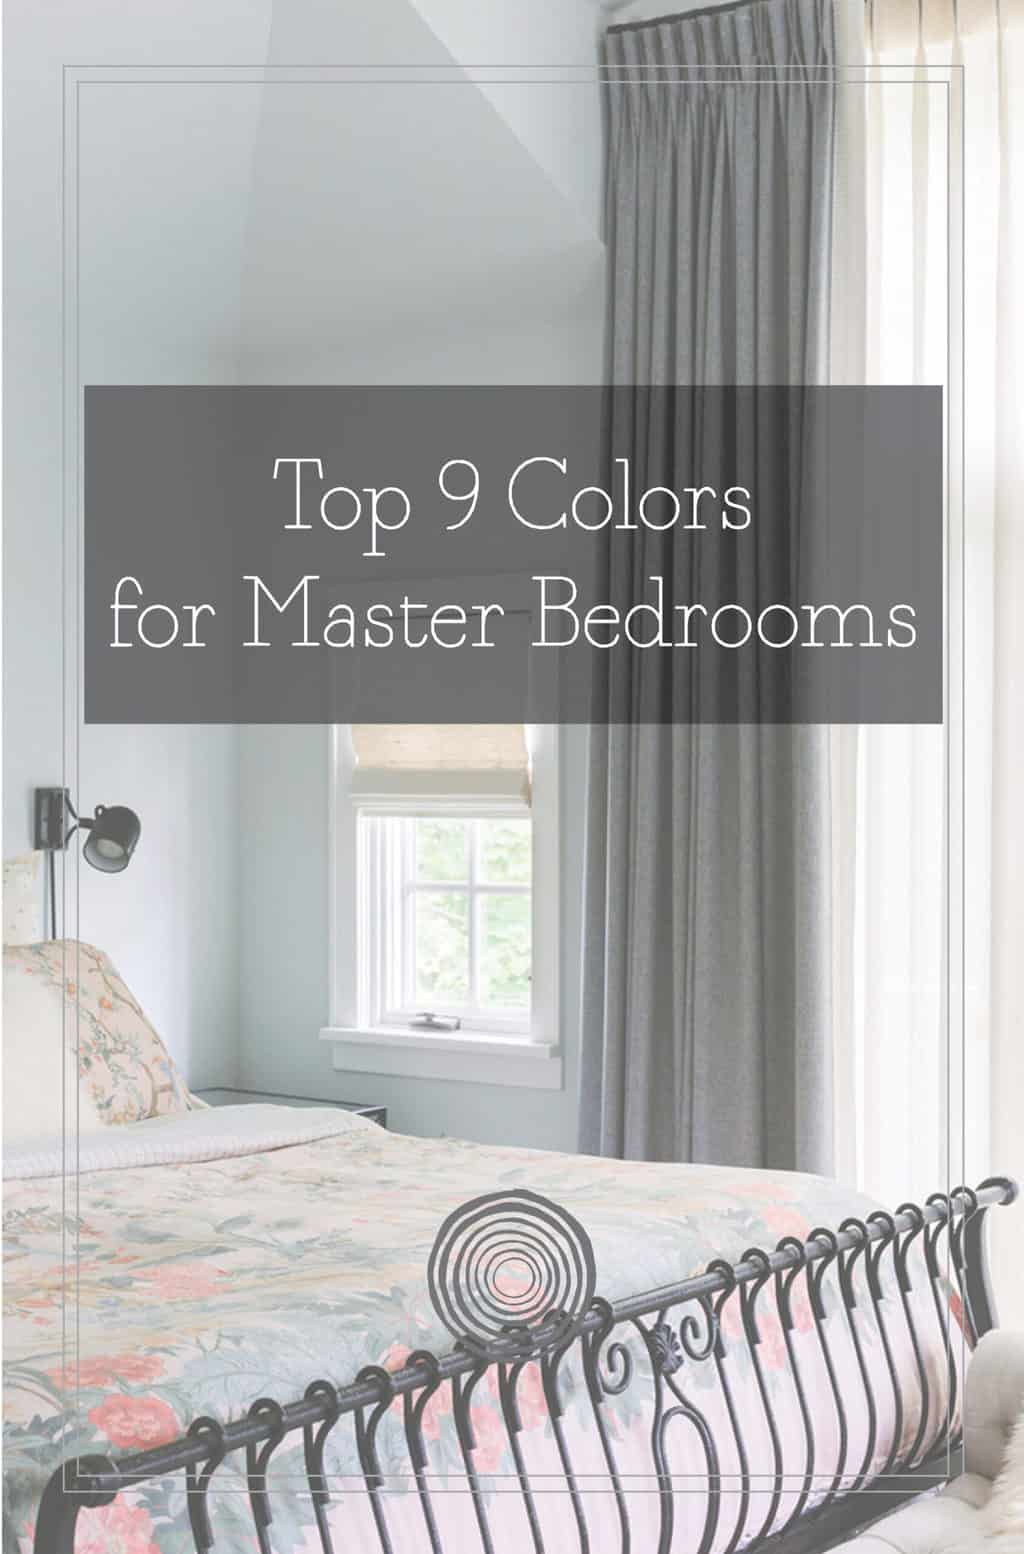 Top 9 Colors for Master Bedrooms PDF